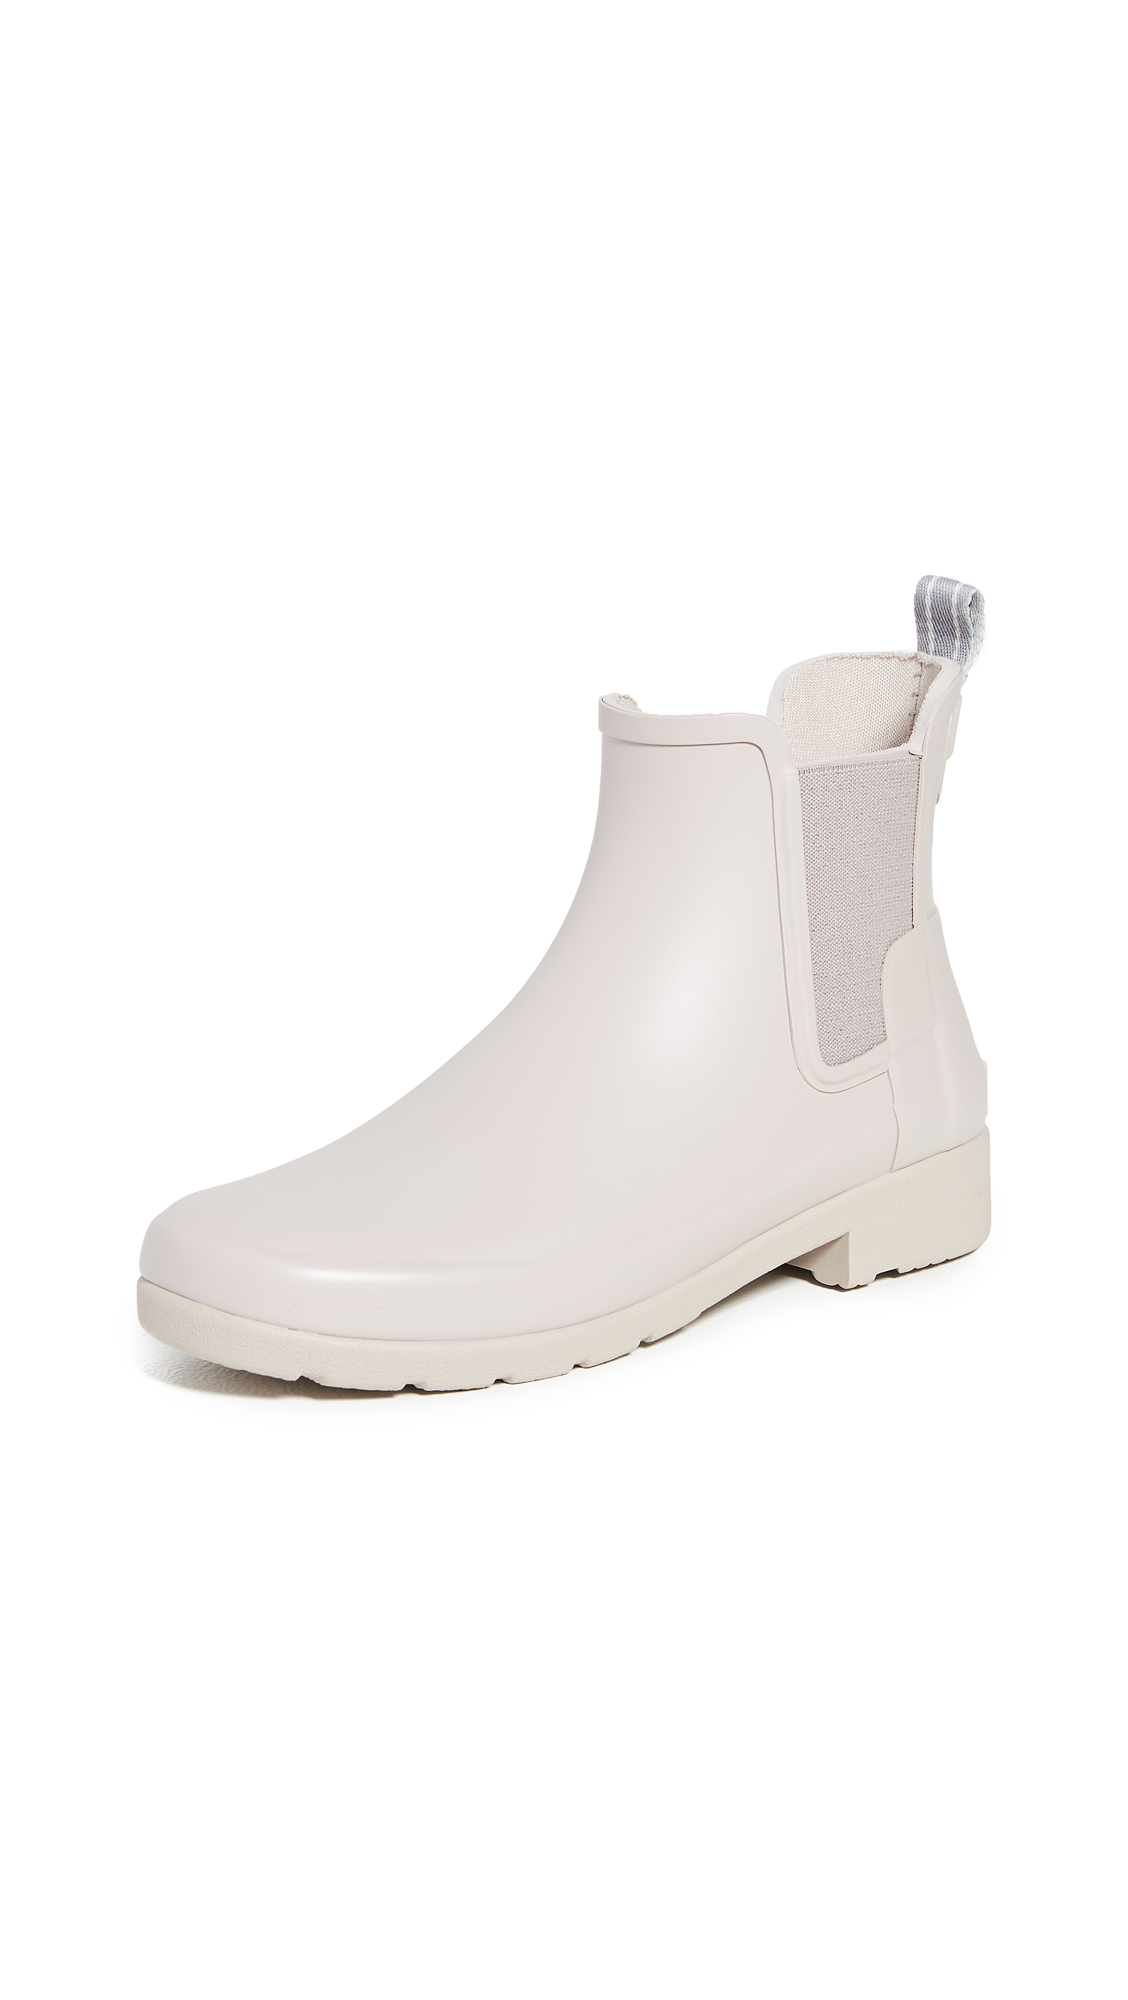 Hunter Boots Refined Chelsea Boots